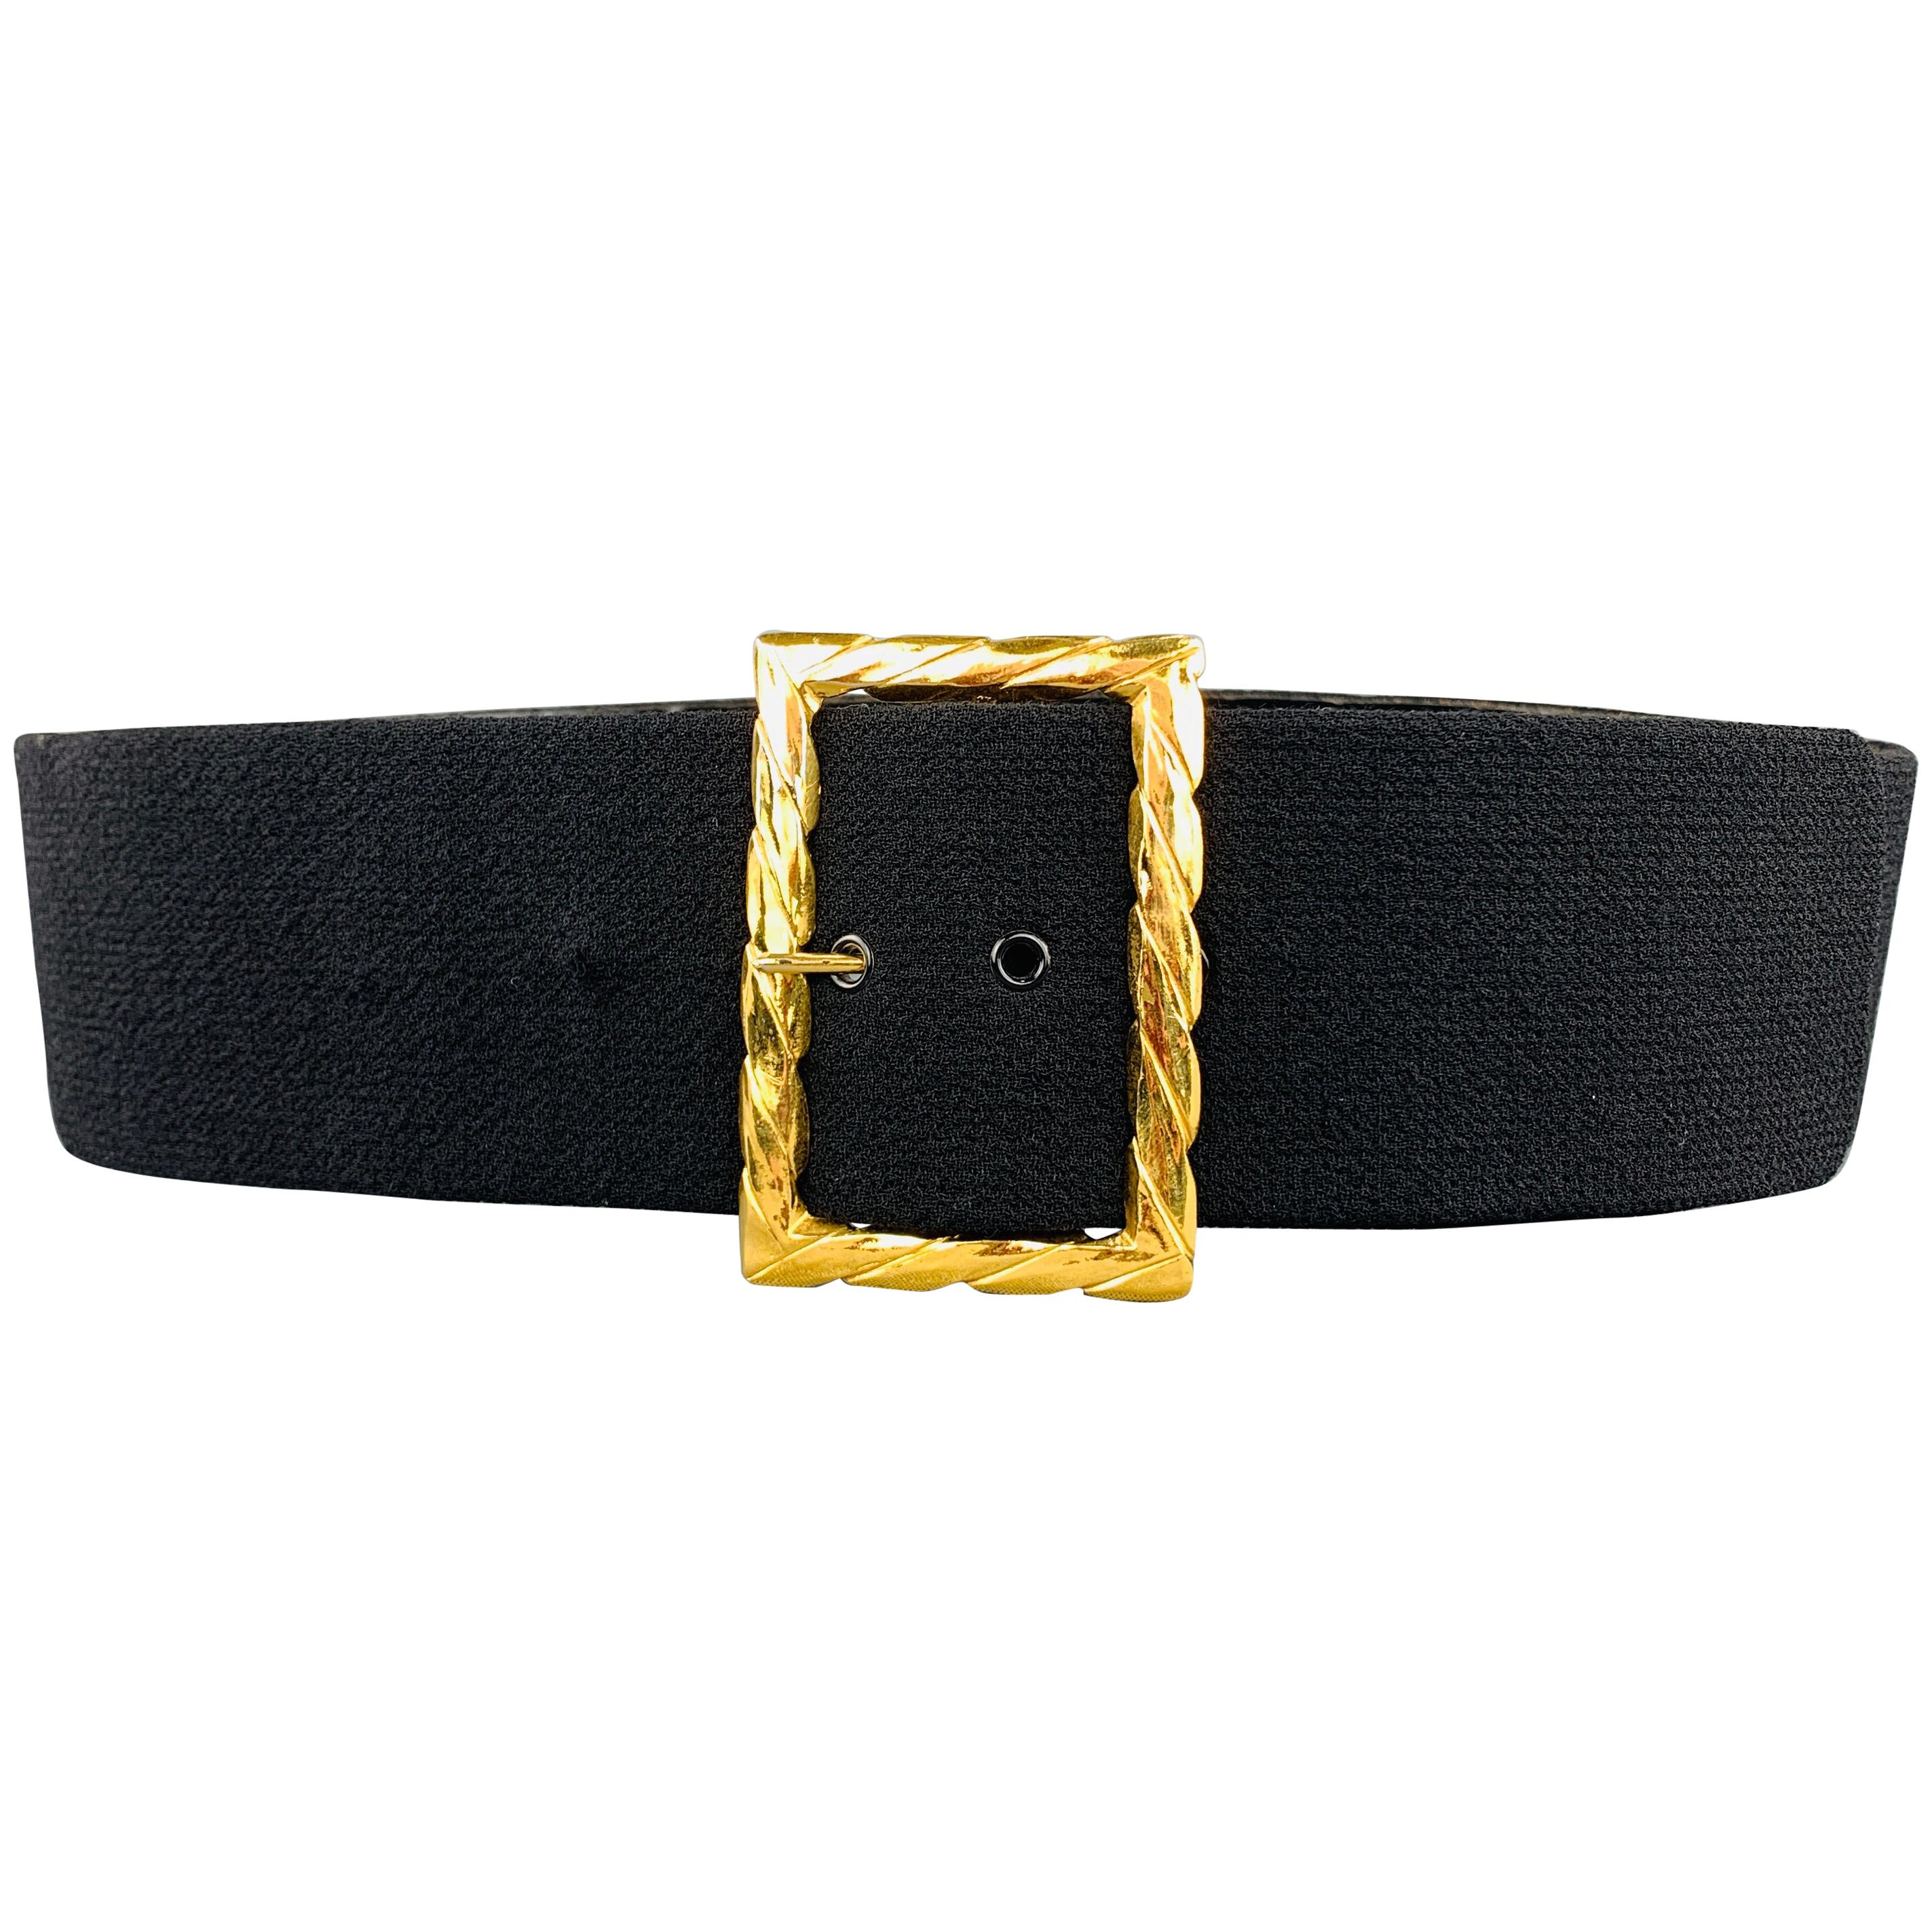 ca390da0c Vintage Chanel Belts - 190 For Sale at 1stdibs